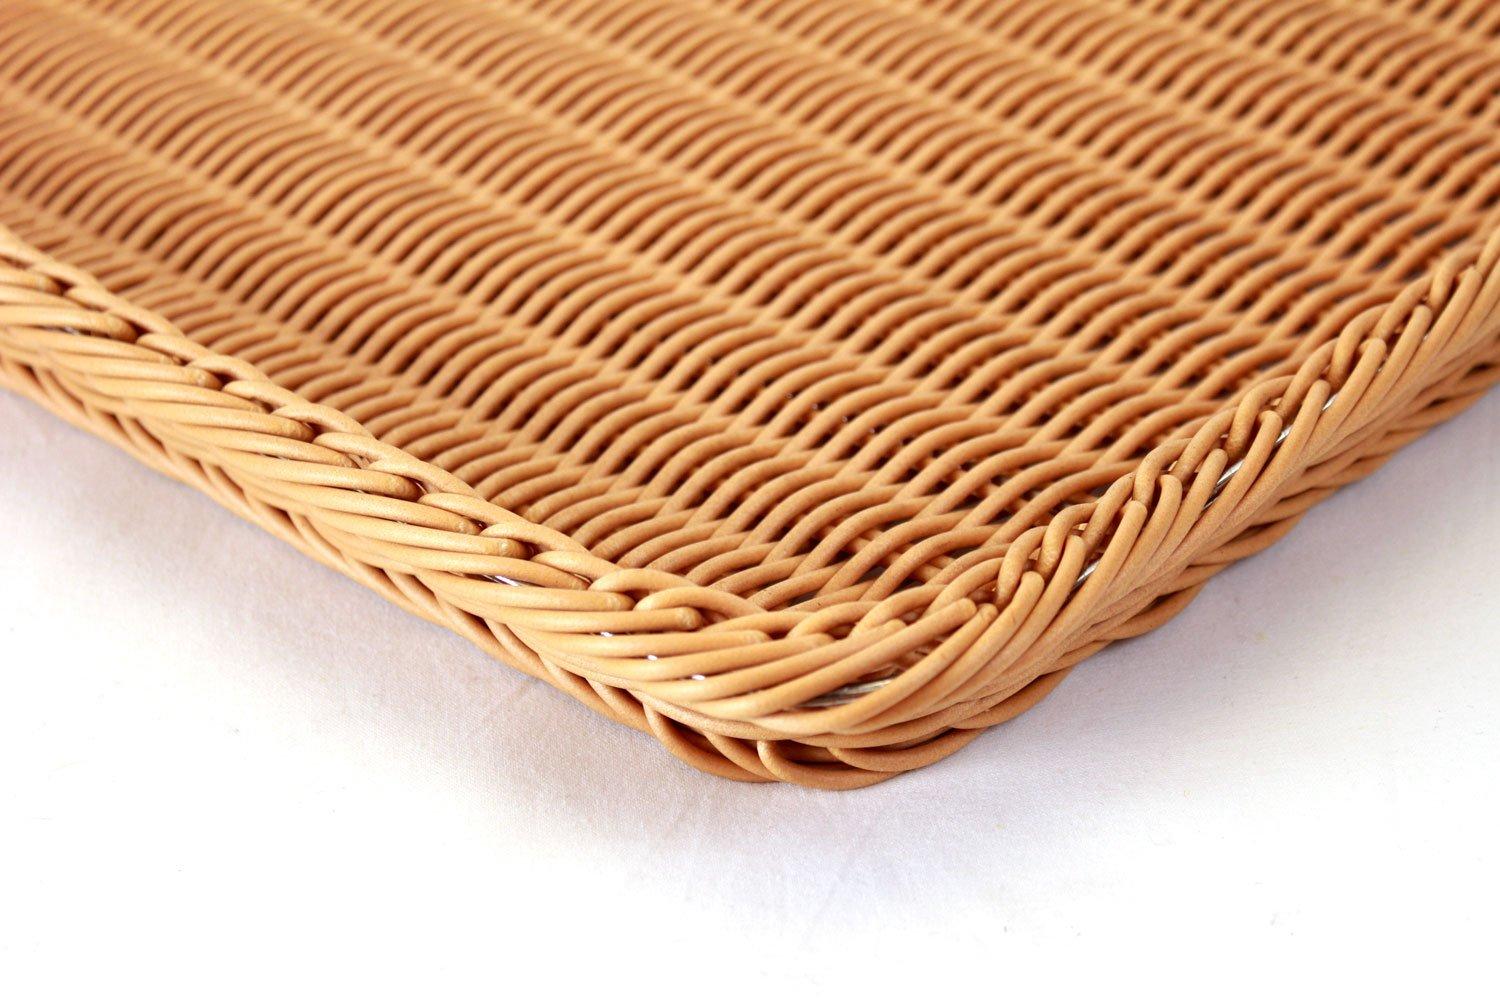 Wicker Basket - Plastic Rectangular- Brown close